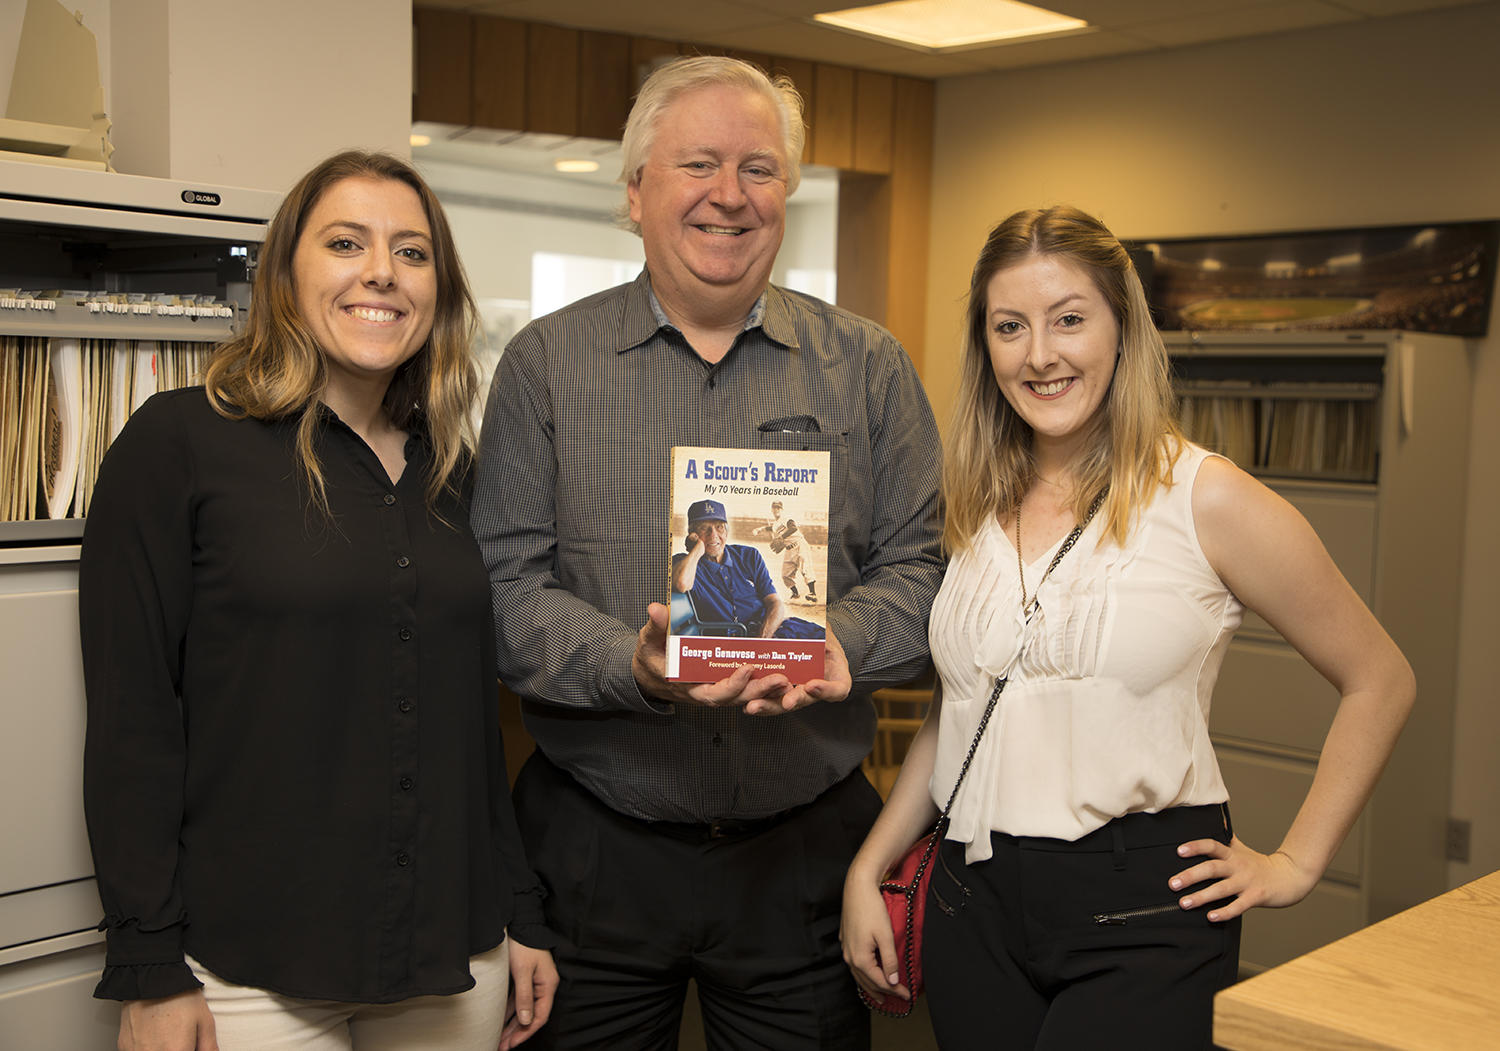 """George Genovese's granddaughters Rose Hayworth (left) and Holly Hayworth (right) pose with Dan Taylor, who co-wrote Genovese's memoir, """"A Scout's Report: My 70 Years in Baseball."""" (Milo Stewart Jr./National Baseball Hall of Fame and Museum)"""